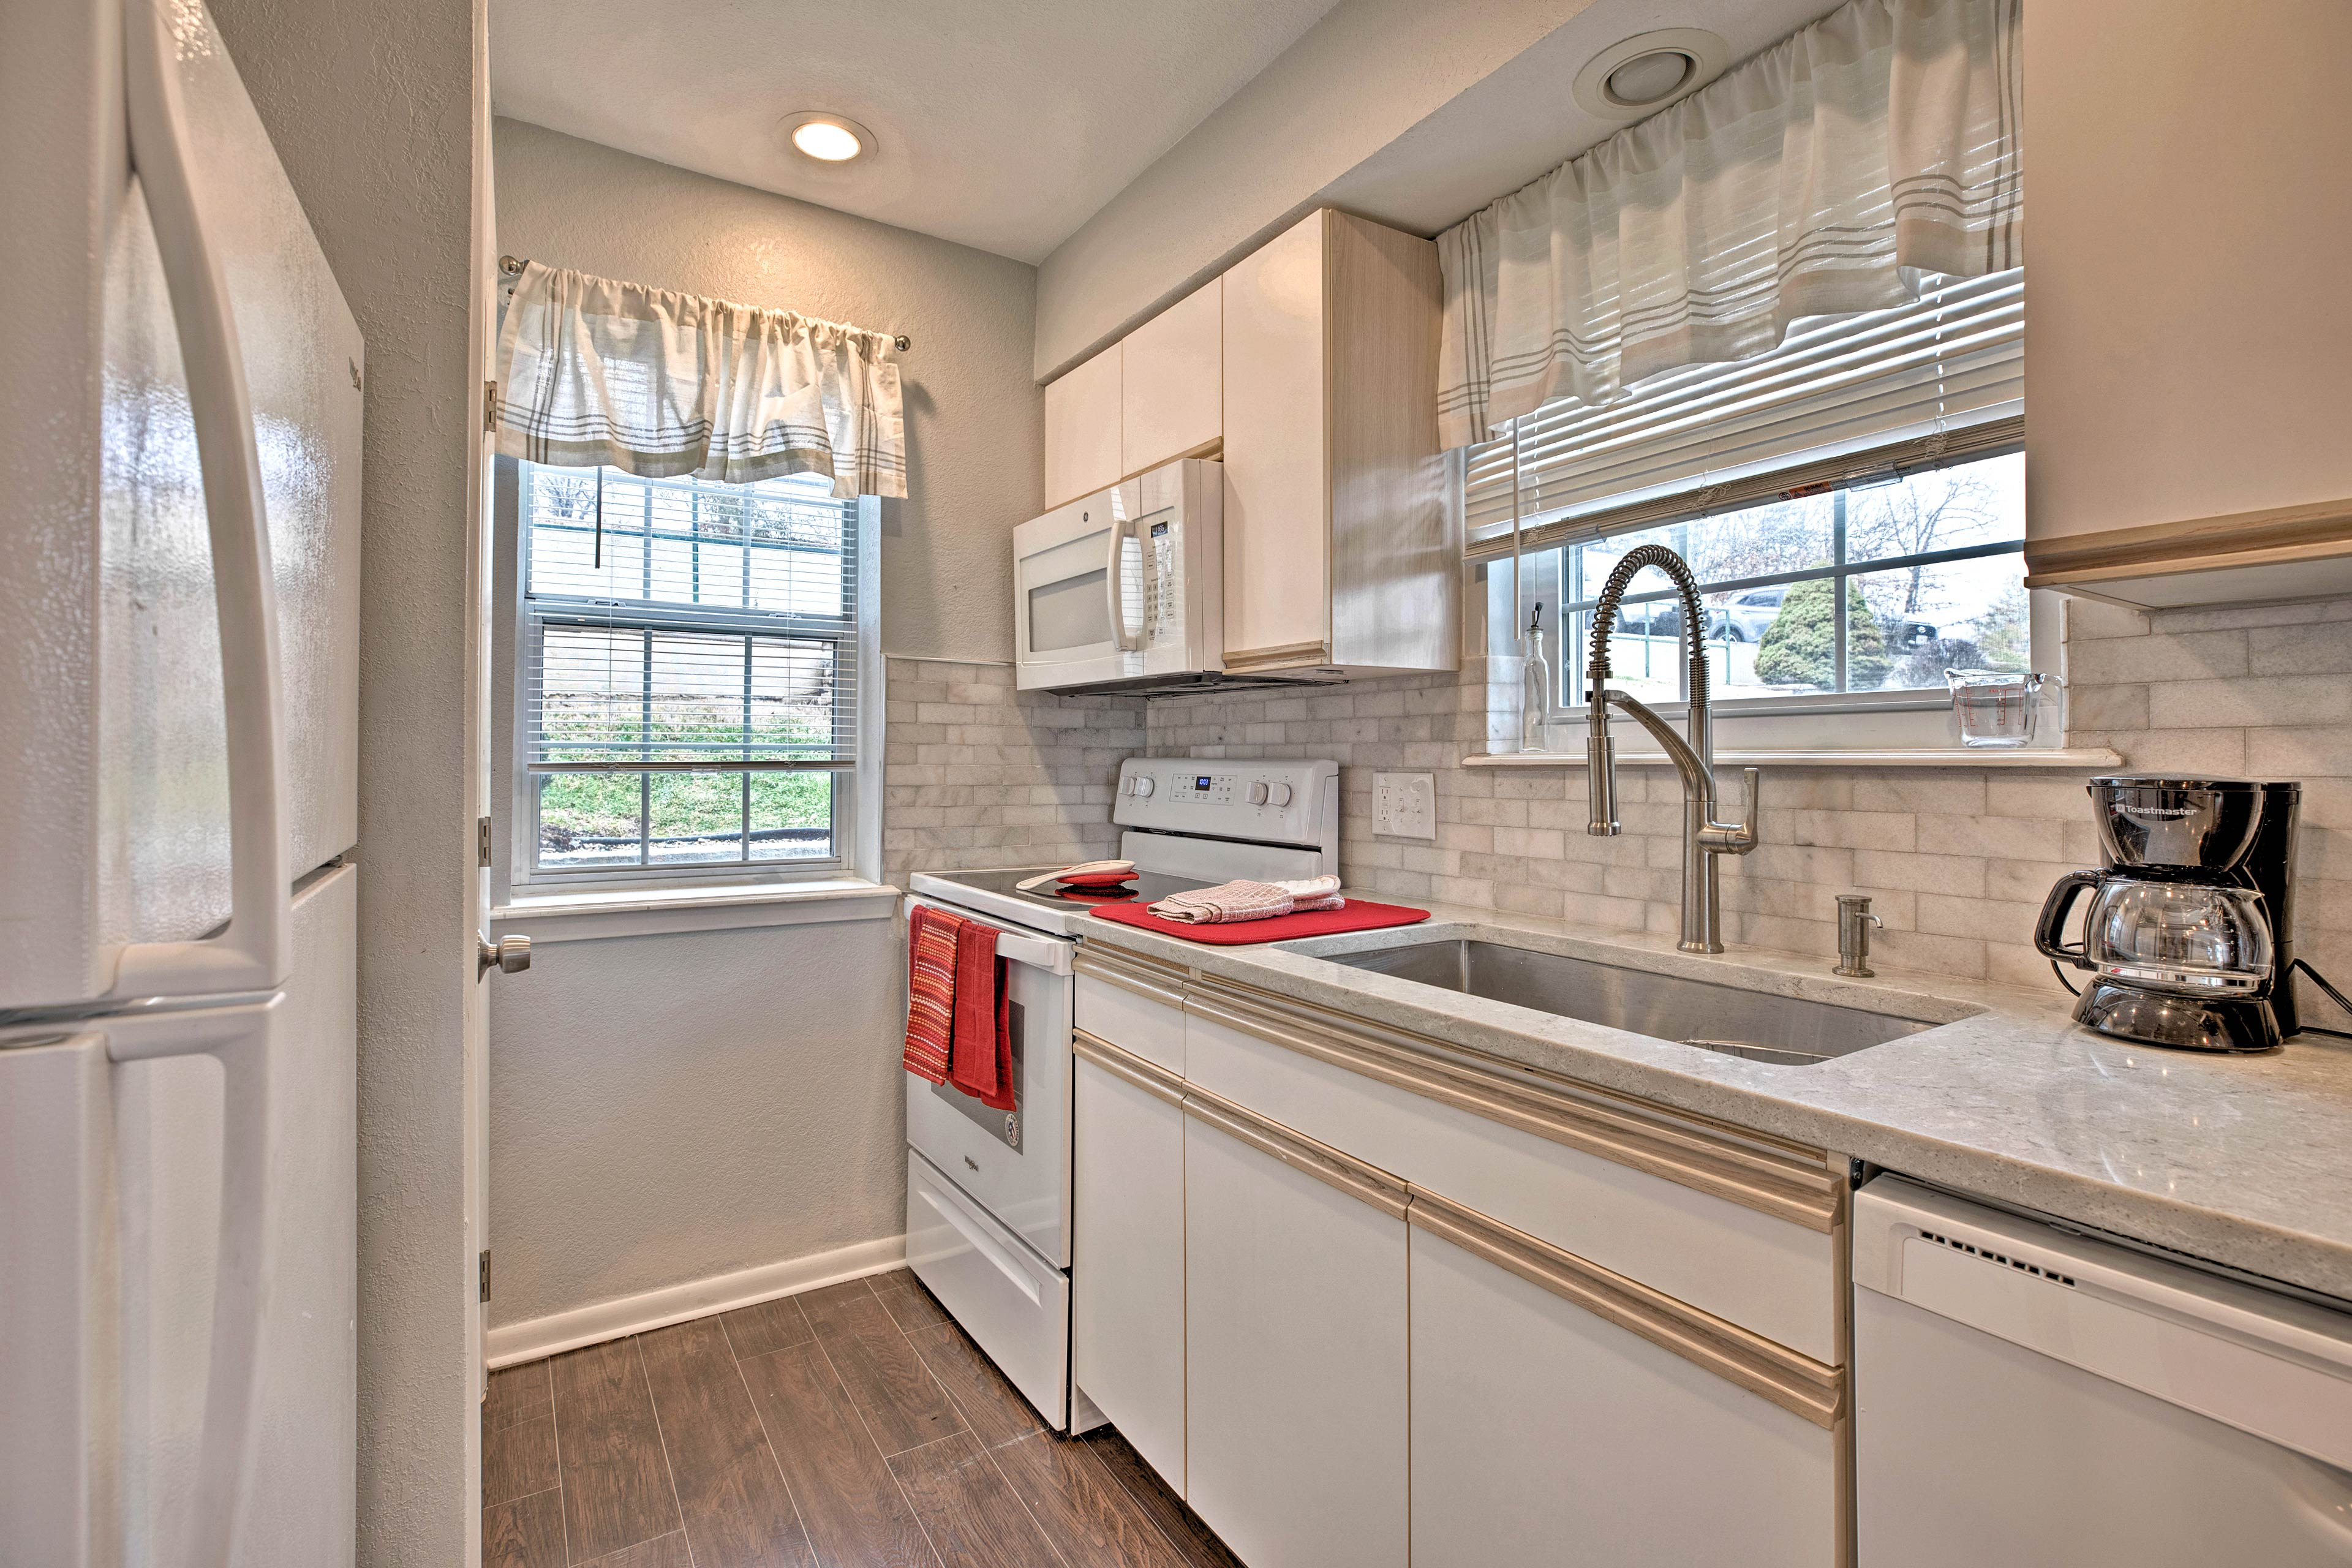 Go out or stay in for a home cooked meal in this fully equipped kitchen.